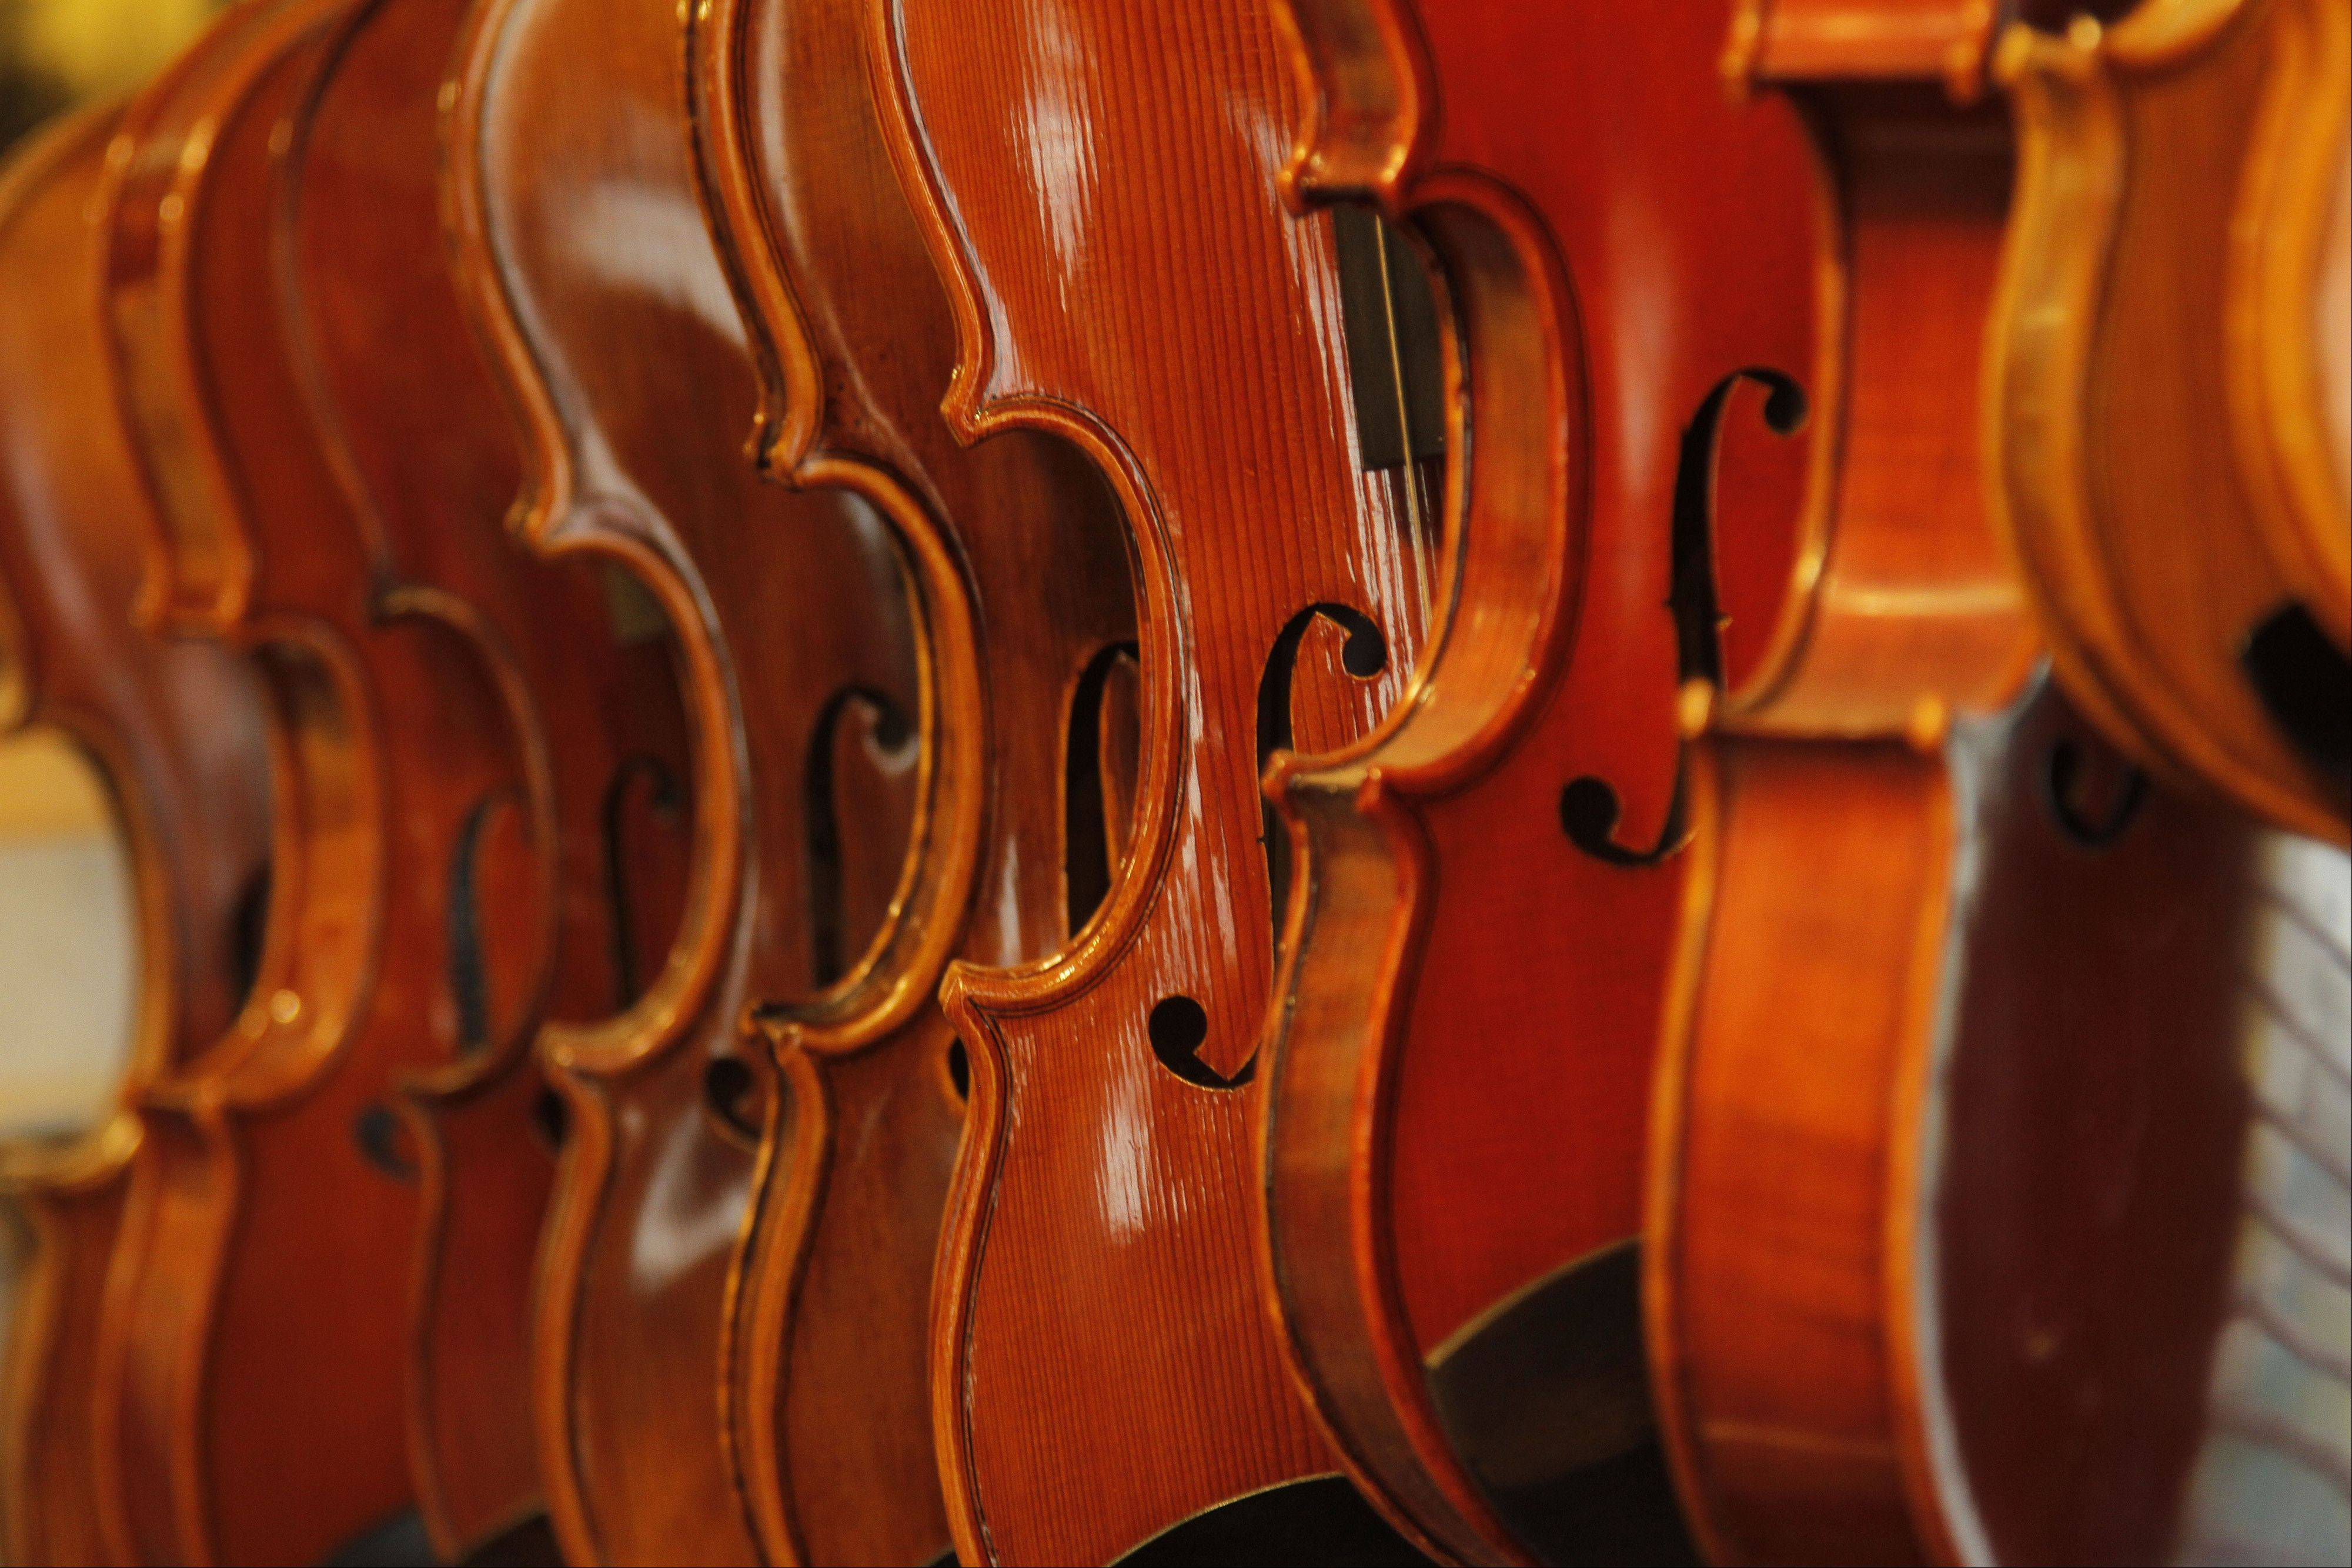 Hoffmann hopes to make two or three violins this year. While being a master craftsman, his main business remains rentals and repairs.